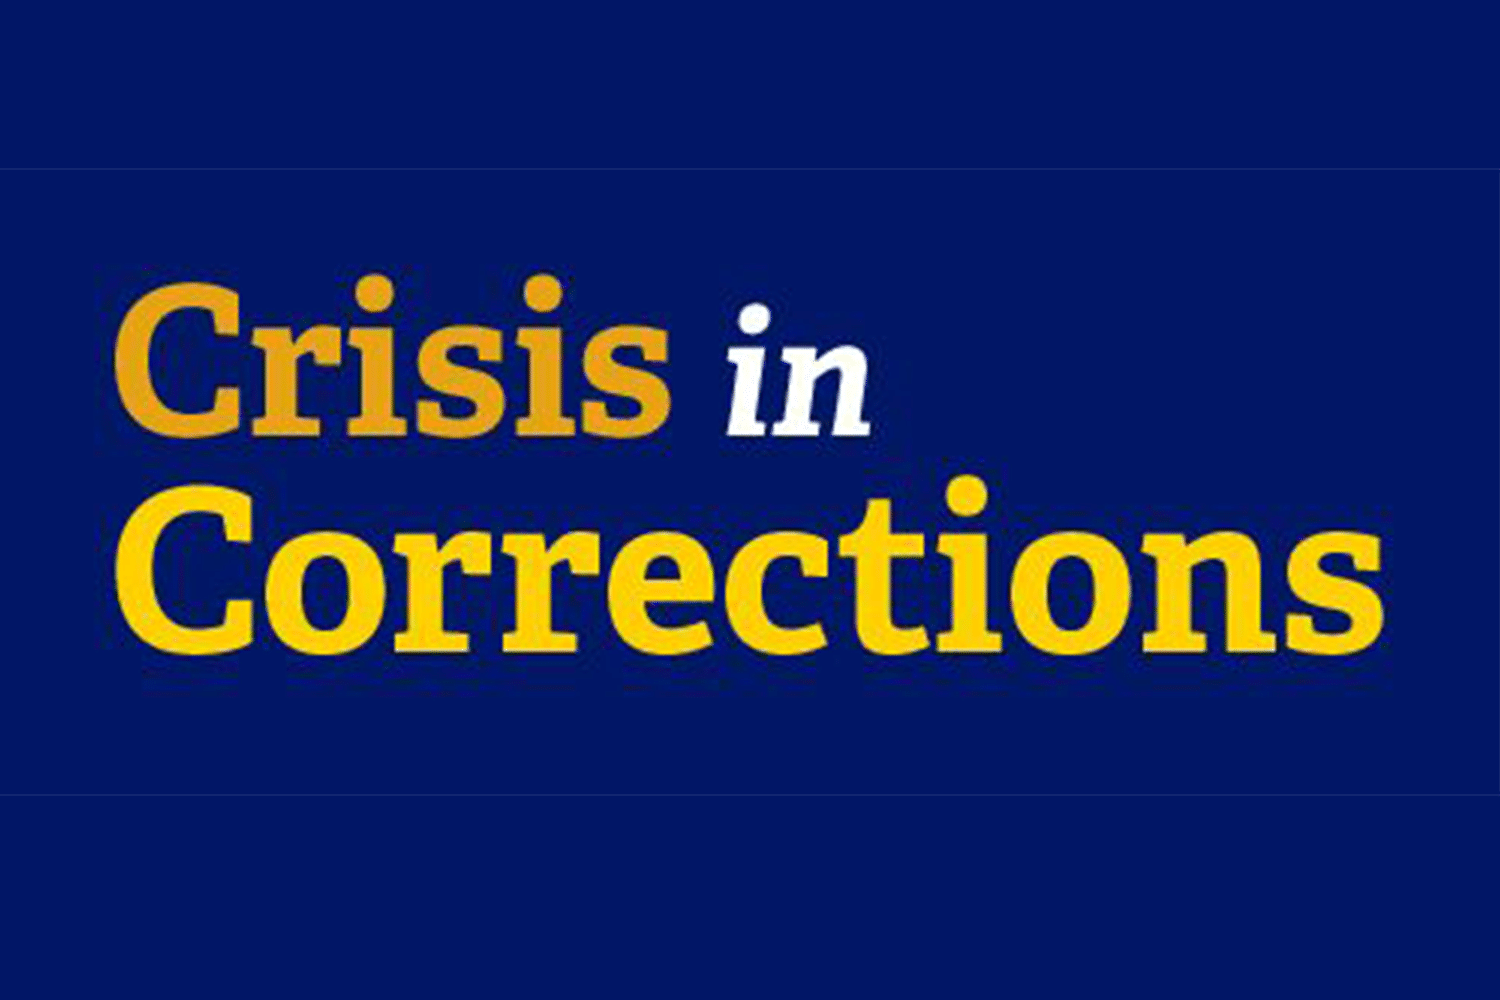 Crisis in Corrections